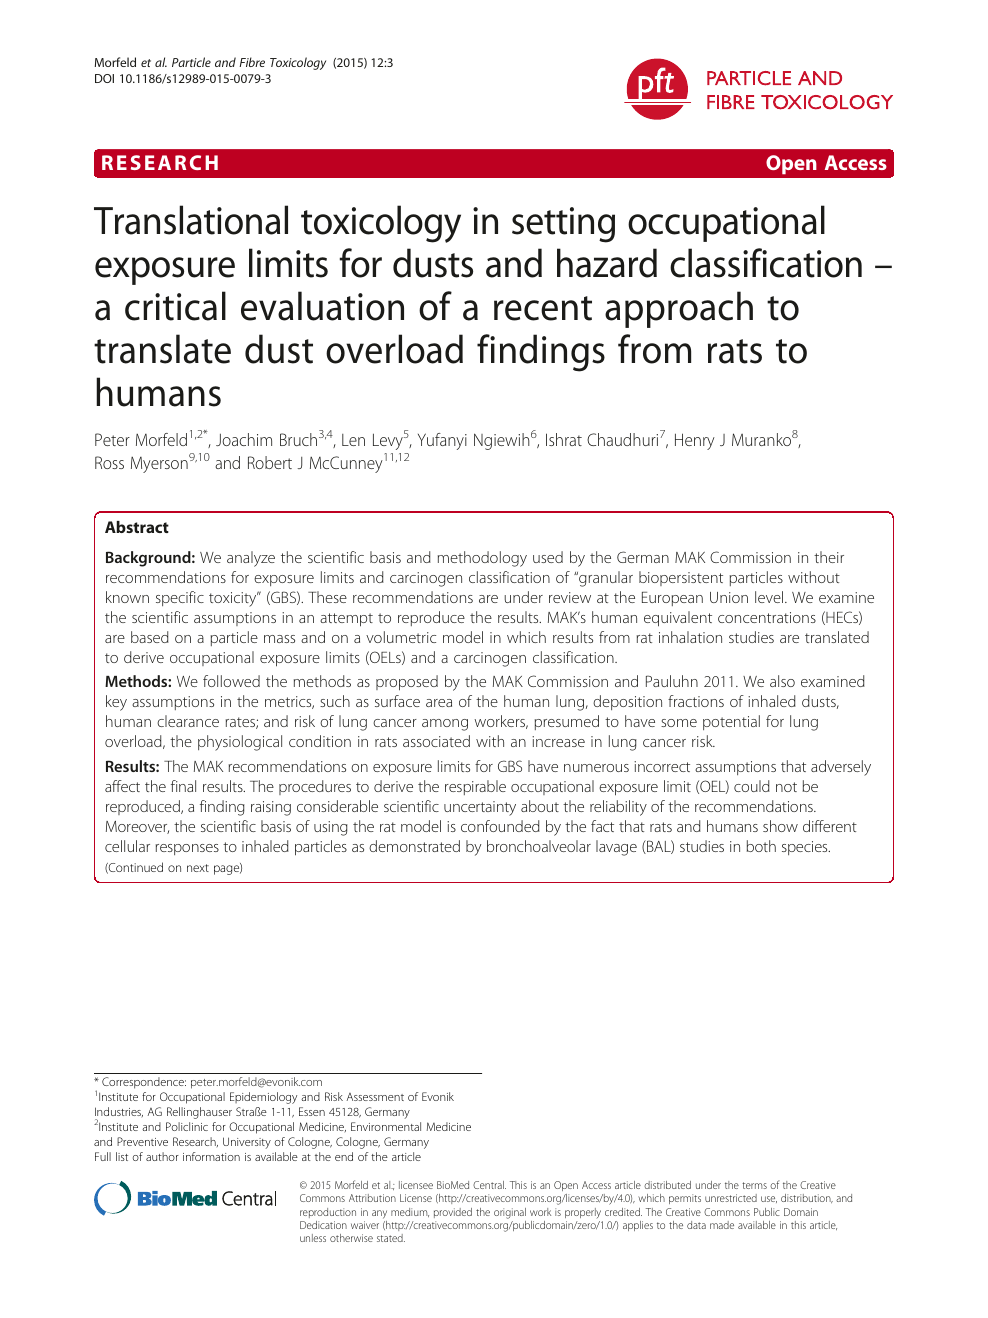 Translational toxicology in setting occupational exposure